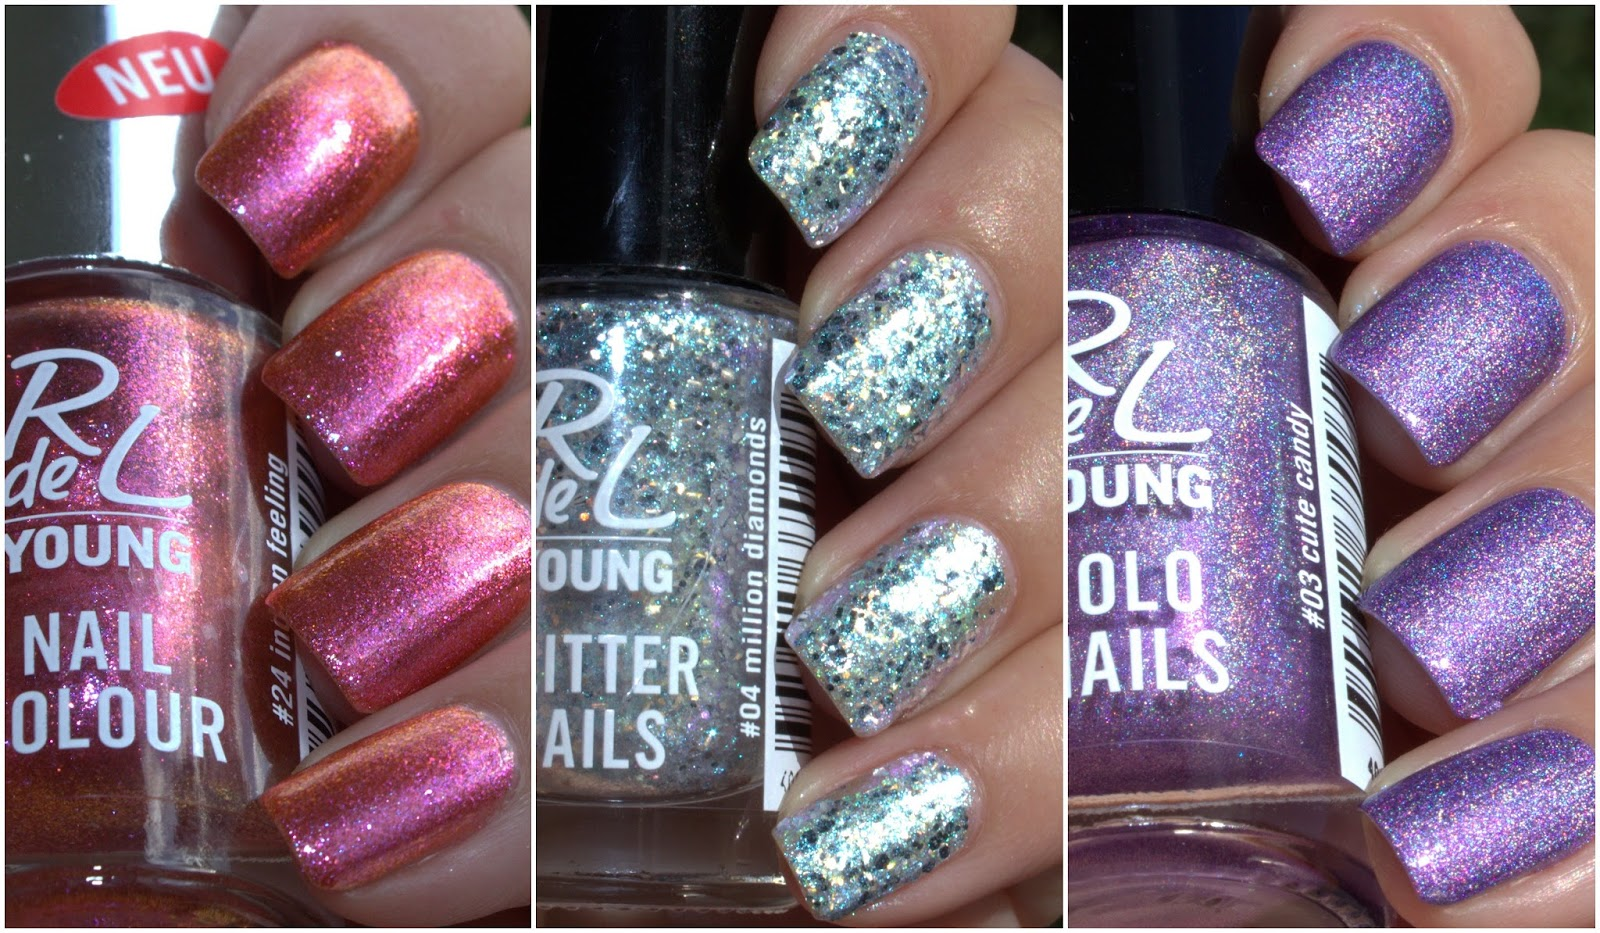 Swatch-Party | Herbst, Glitter & Holo von RdeL Young - HungryNails ...